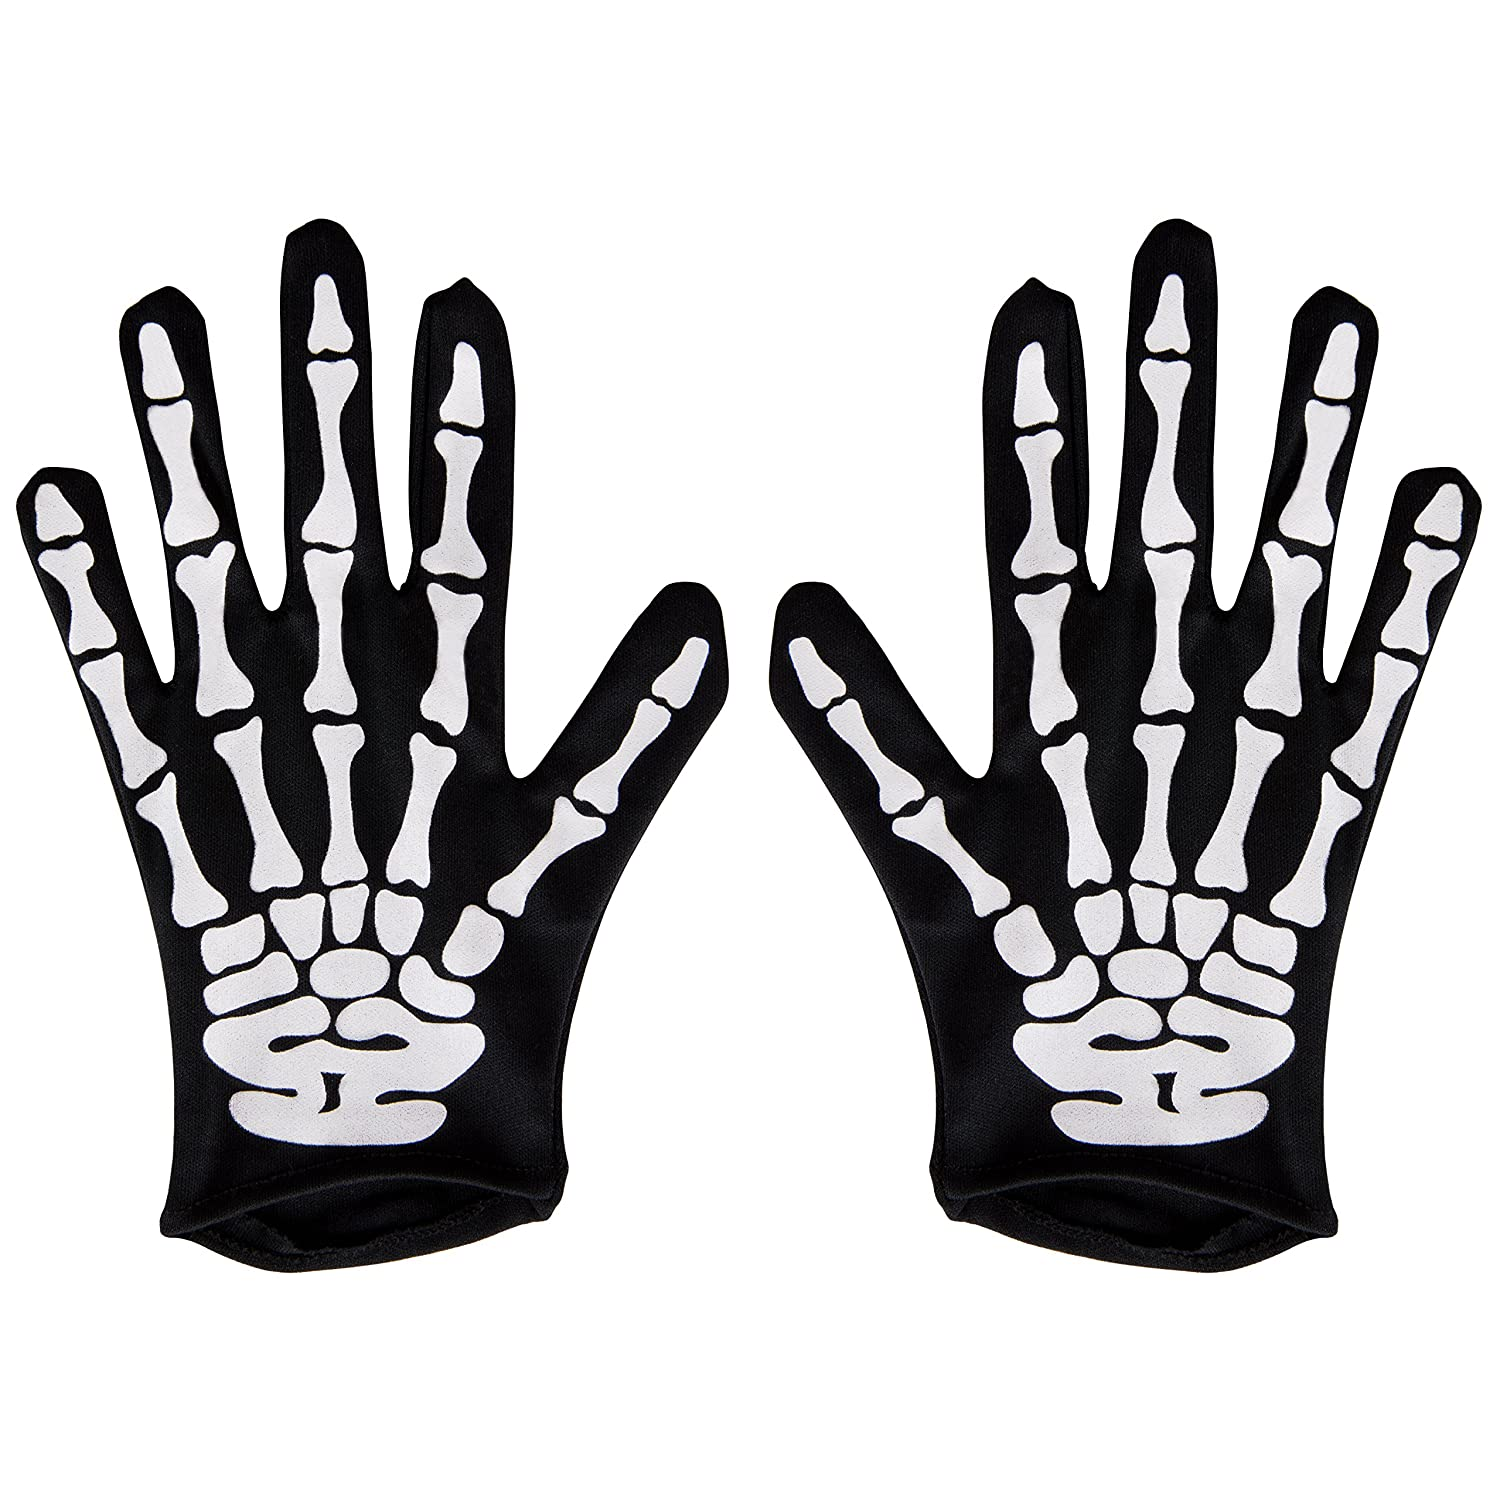 Kangaroo Halloween Accessories - Skeleton Gloves Kangaroo Manufacturing